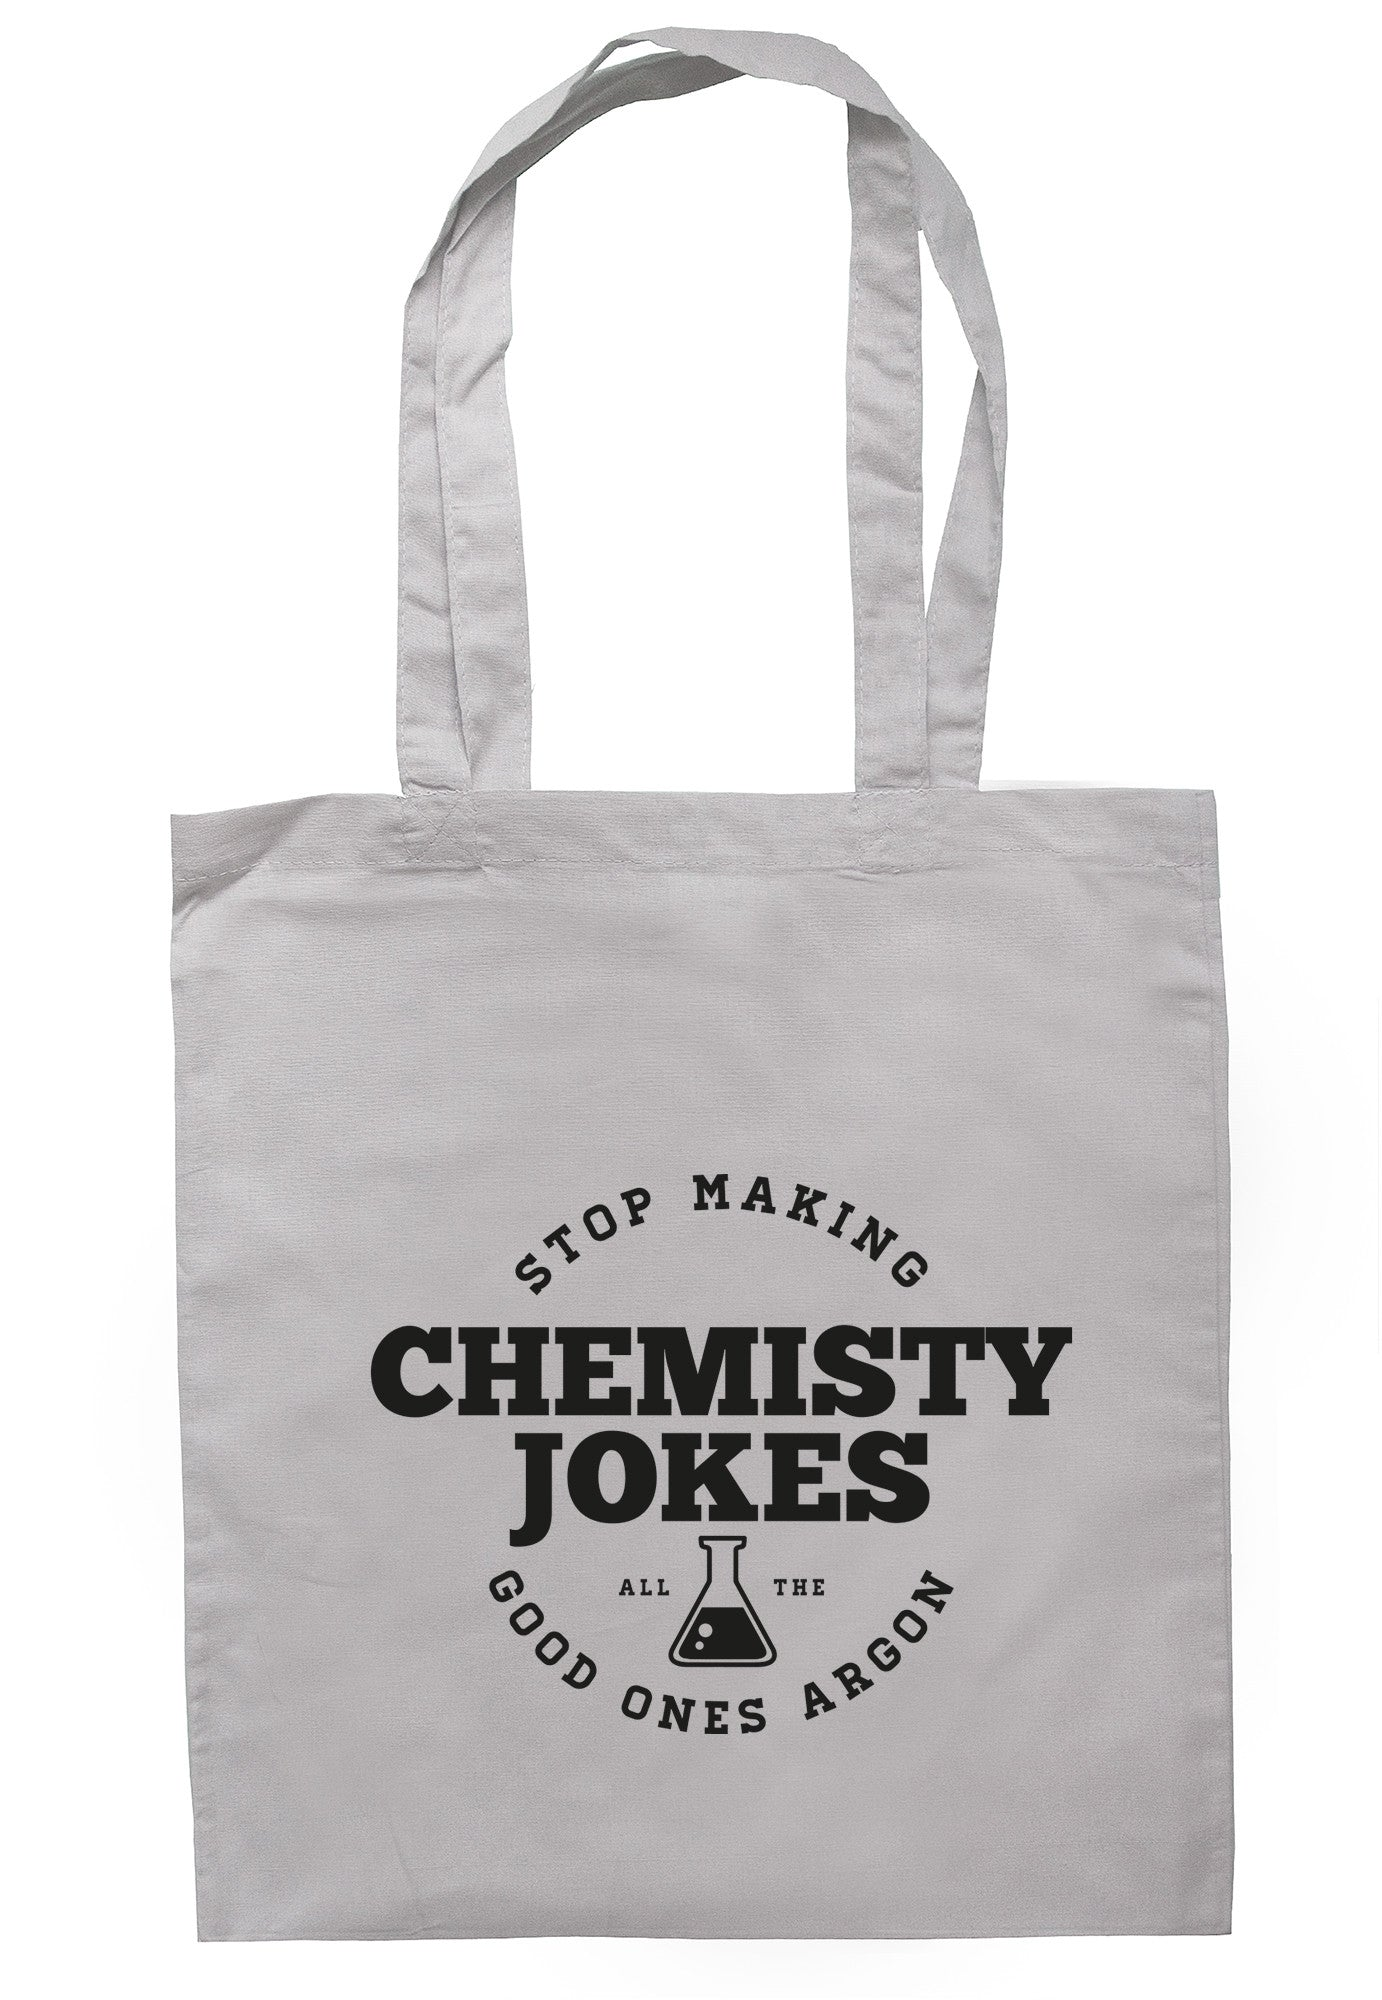 Stop Making Chemistry Jokes All The Good Ones Argon Tote Bag TB0374 - Illustrated Identity Ltd.